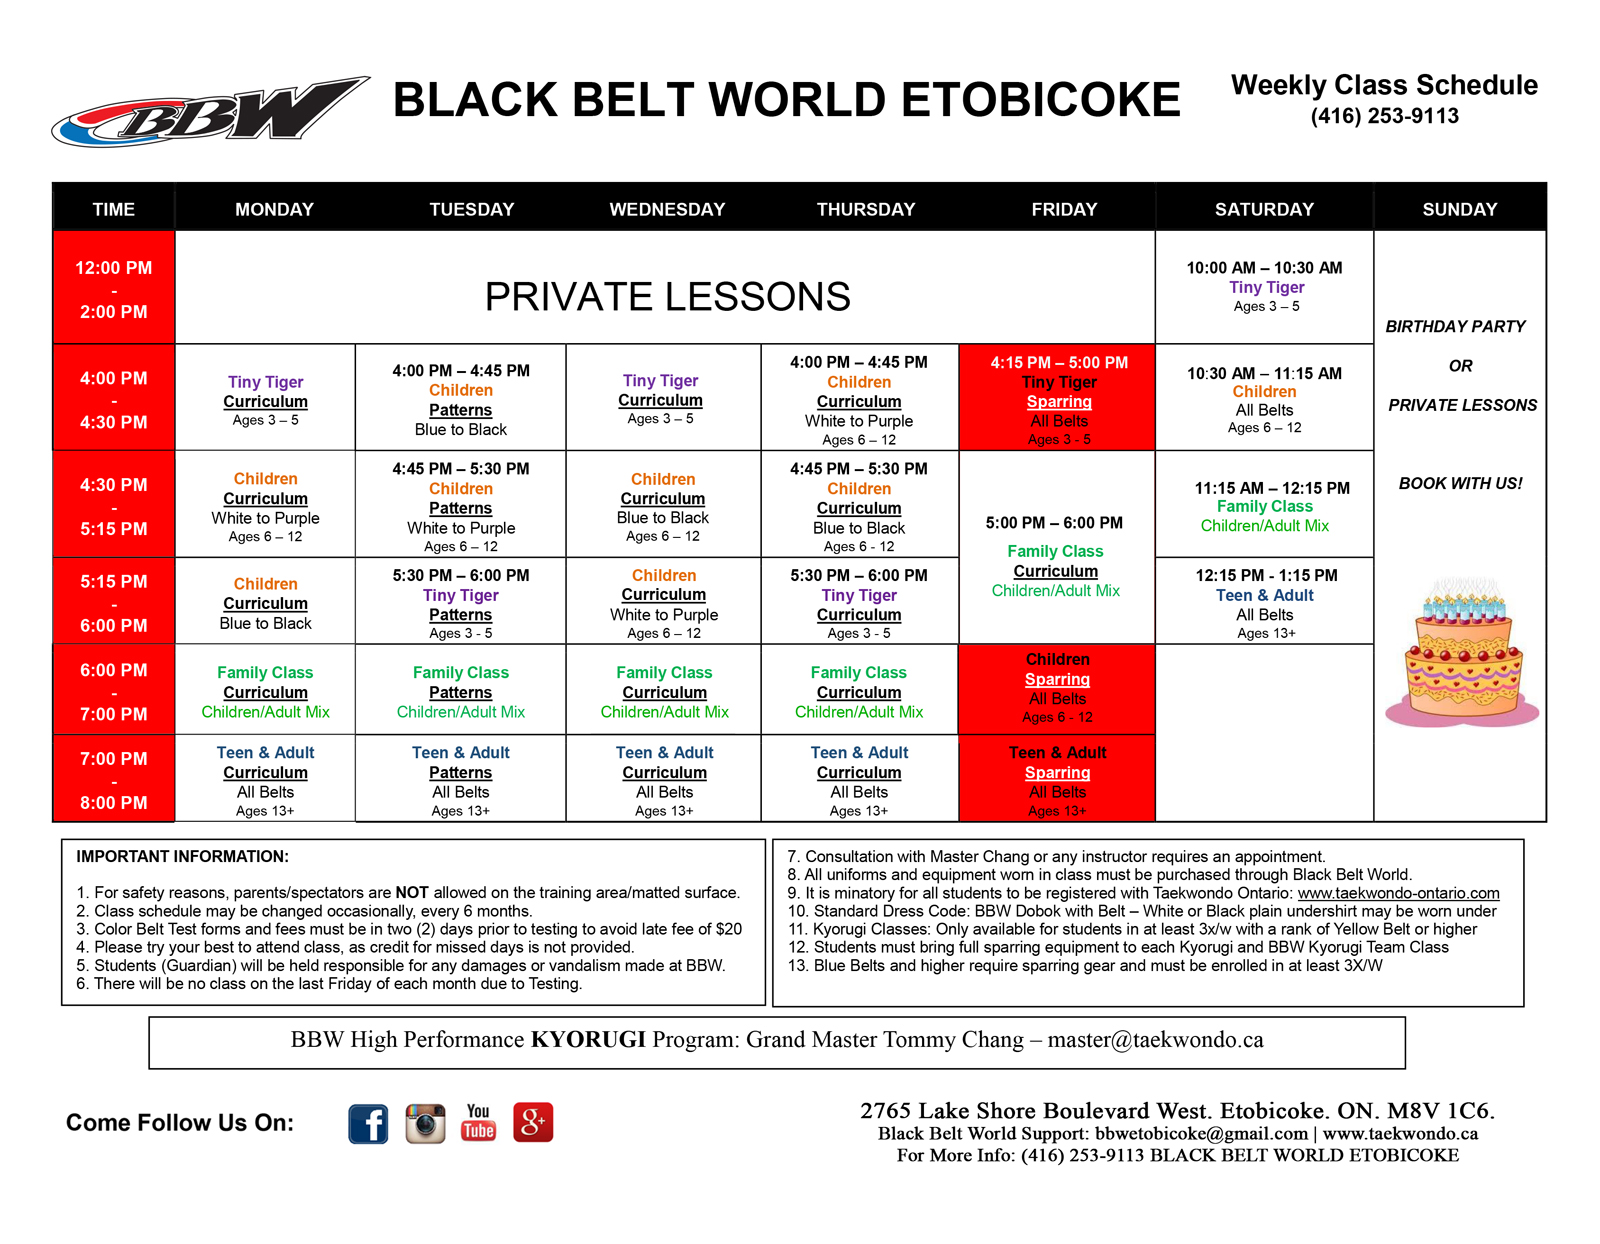 BLACK BELT WORLD Etobicoke SCHEDULE